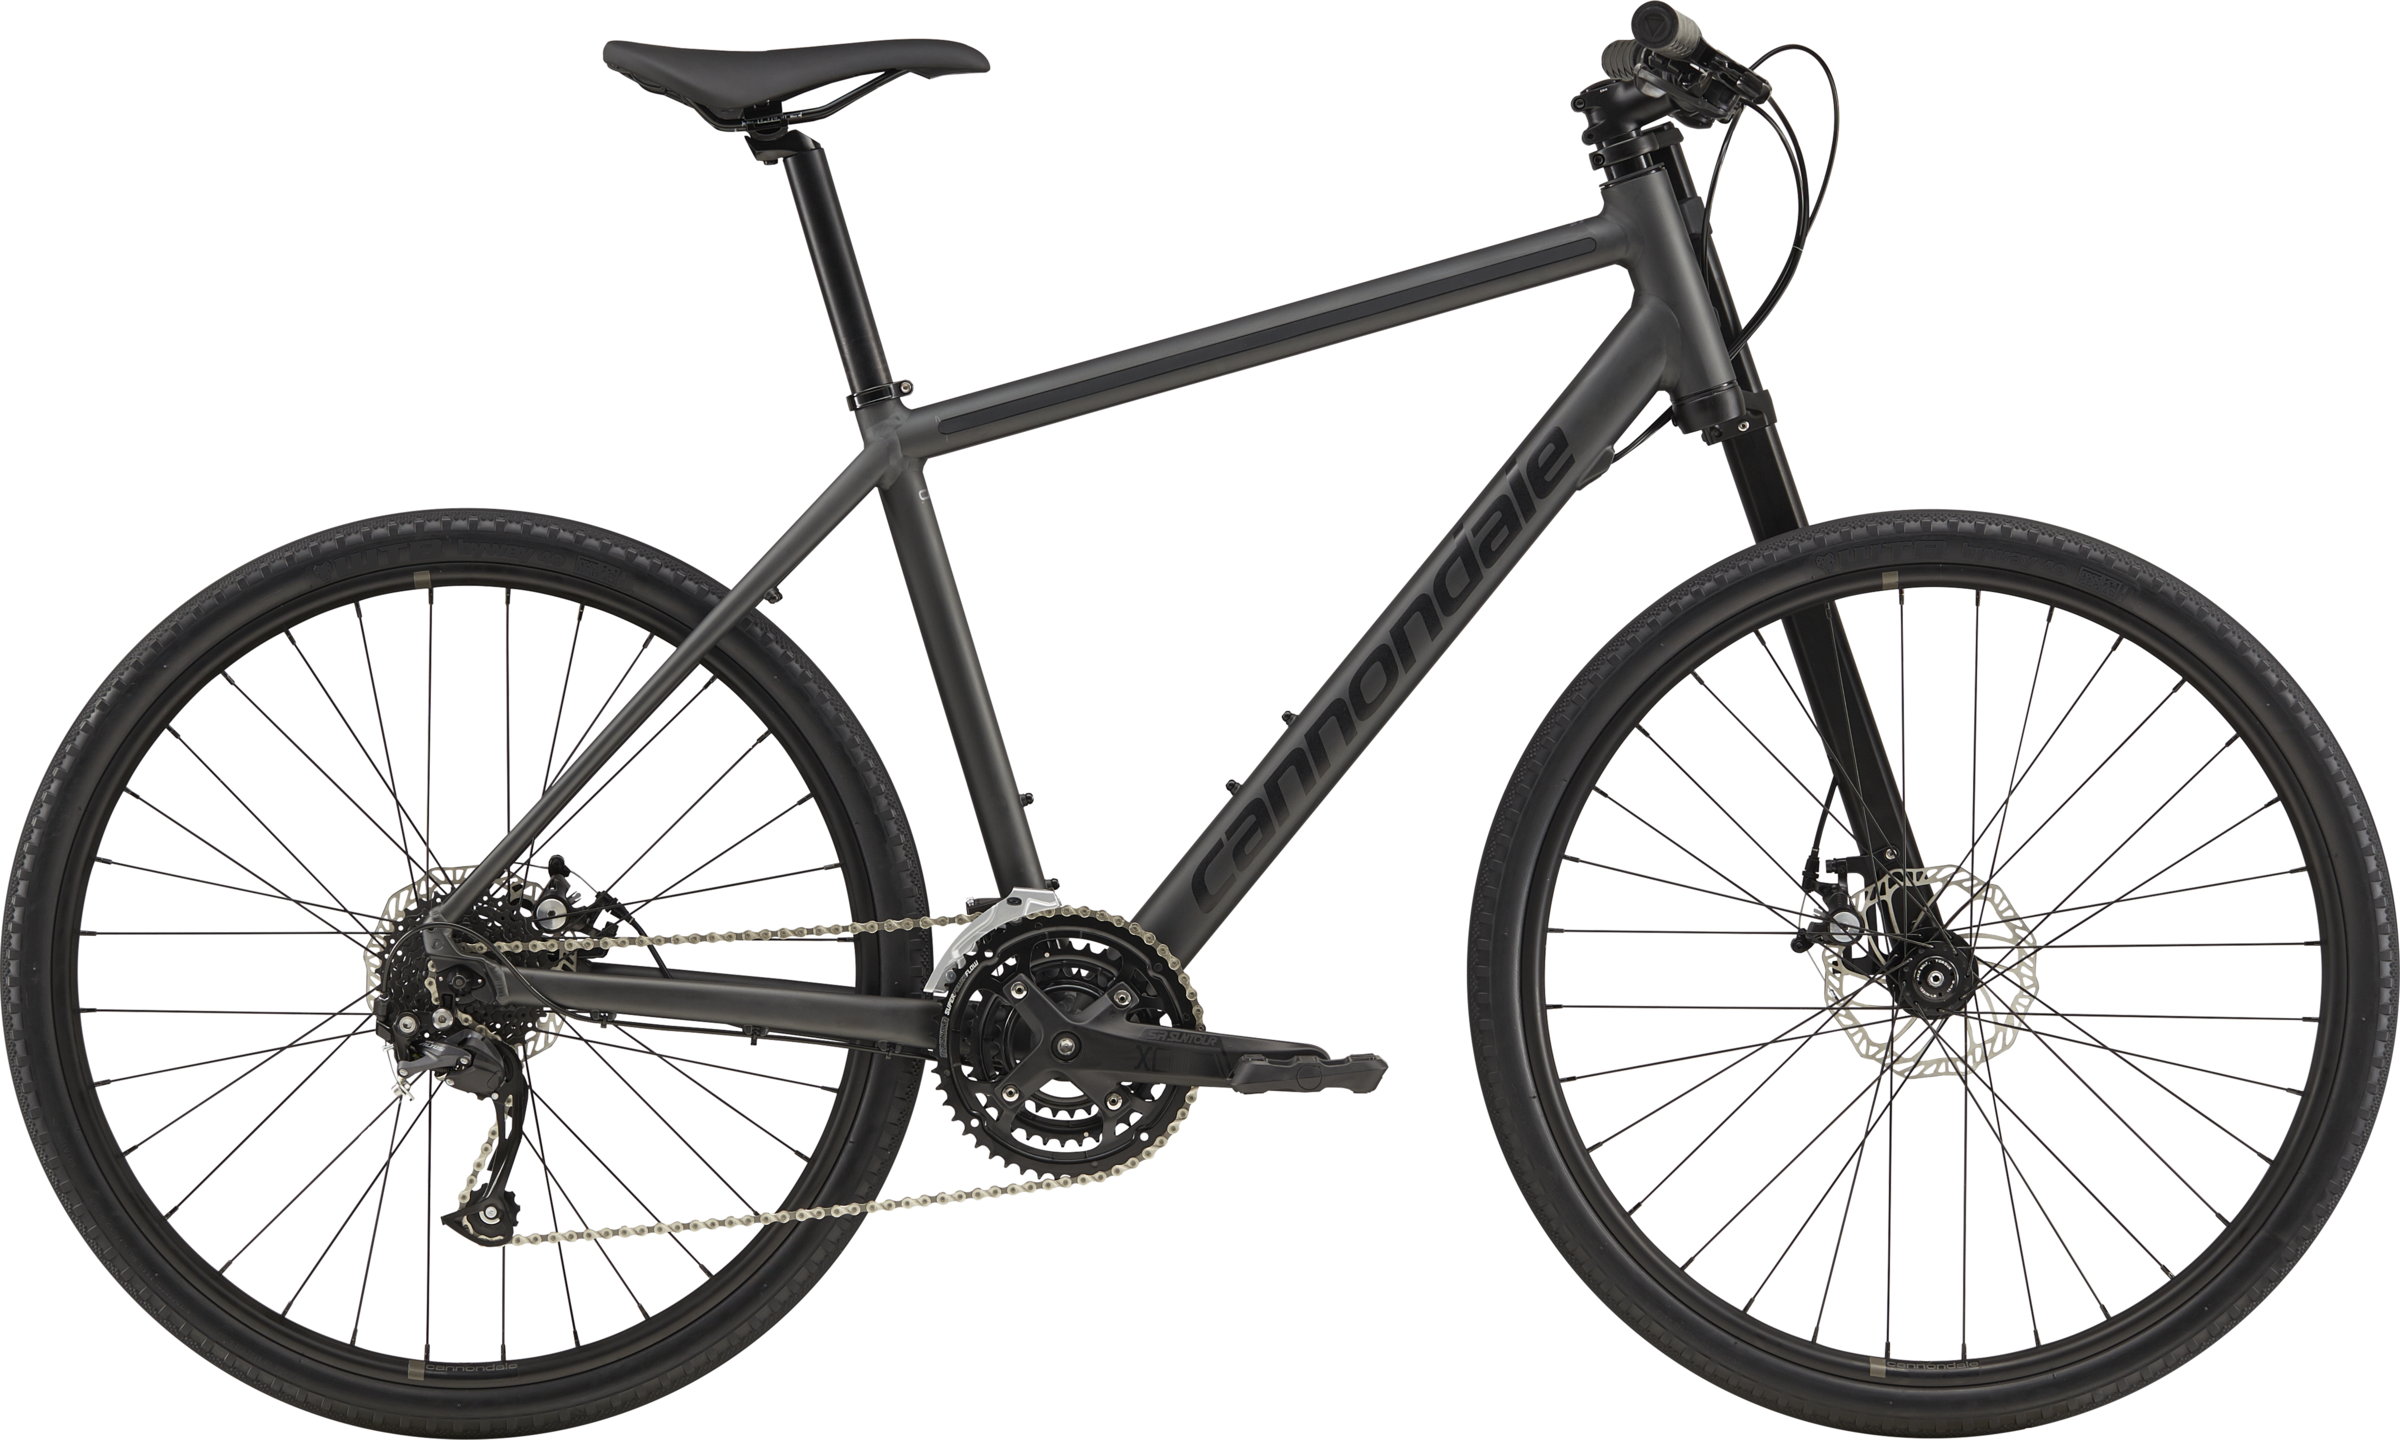 ac3f92addac Cannondale 27.5 M Bad Boy 3 - Gears Bike Shop - Mississauga, Toronto ...